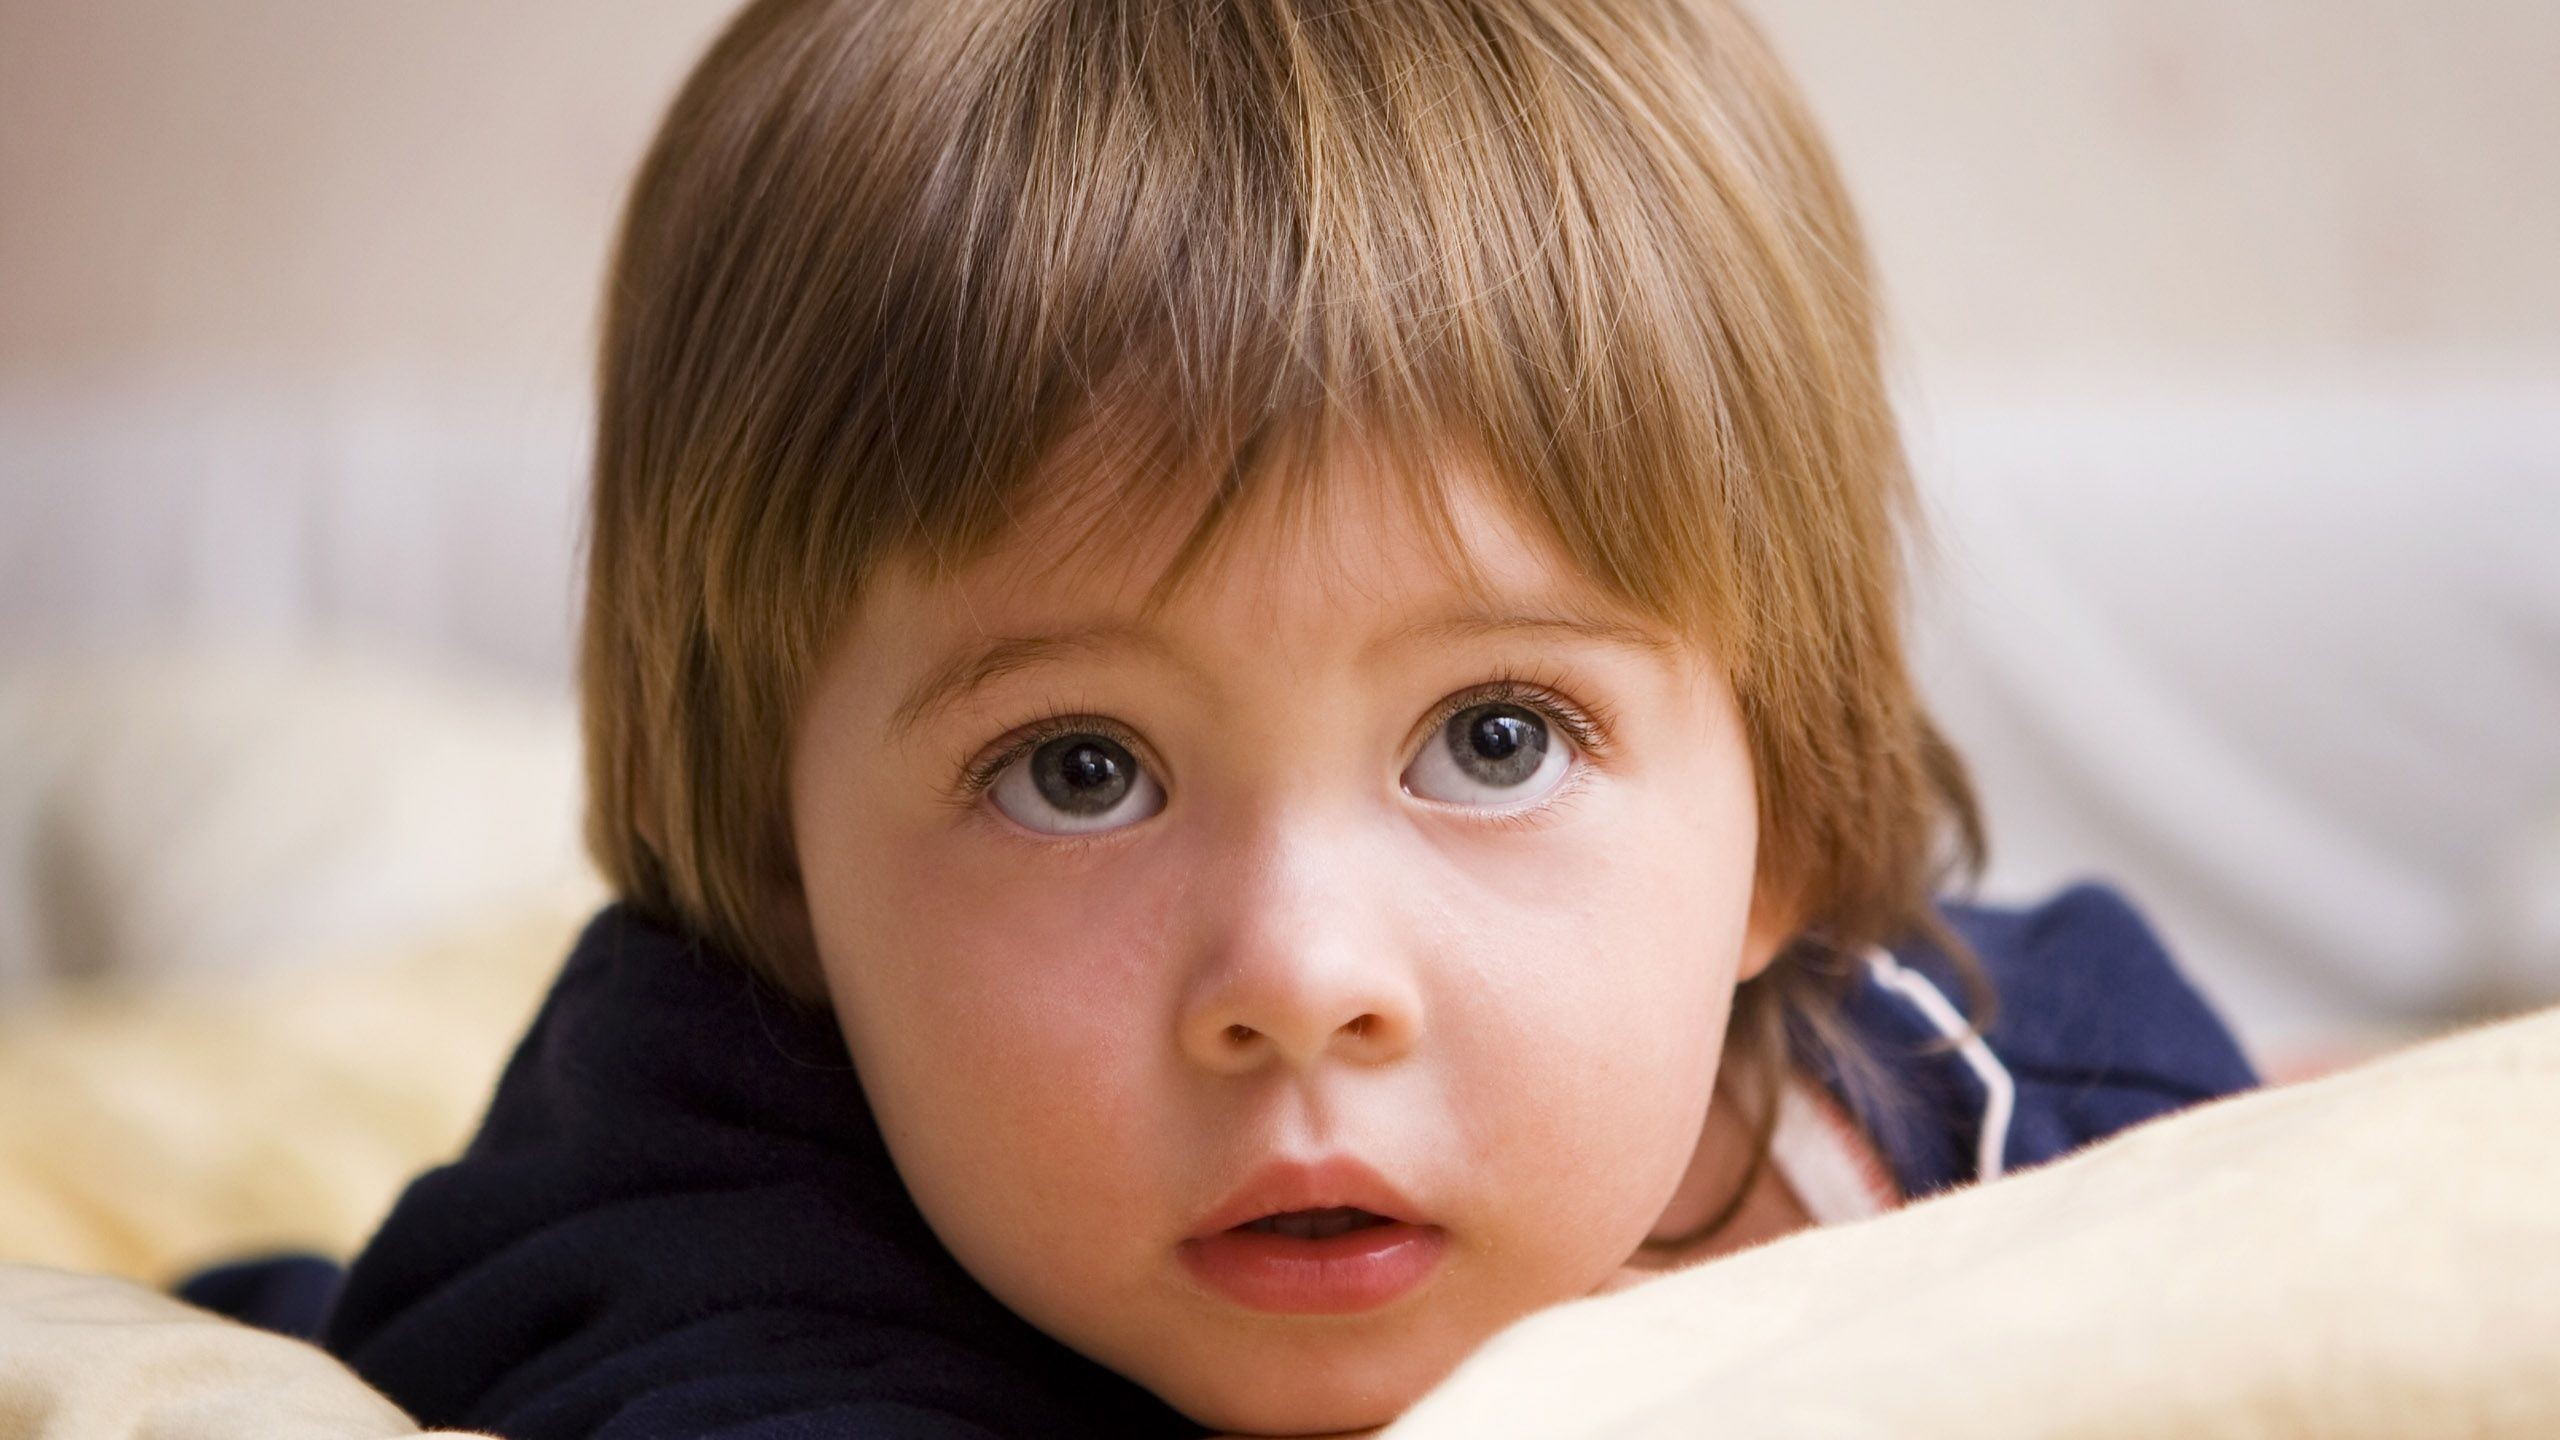 Beautiful And Cute Baby Boy Profile Picture – Online Gupshup